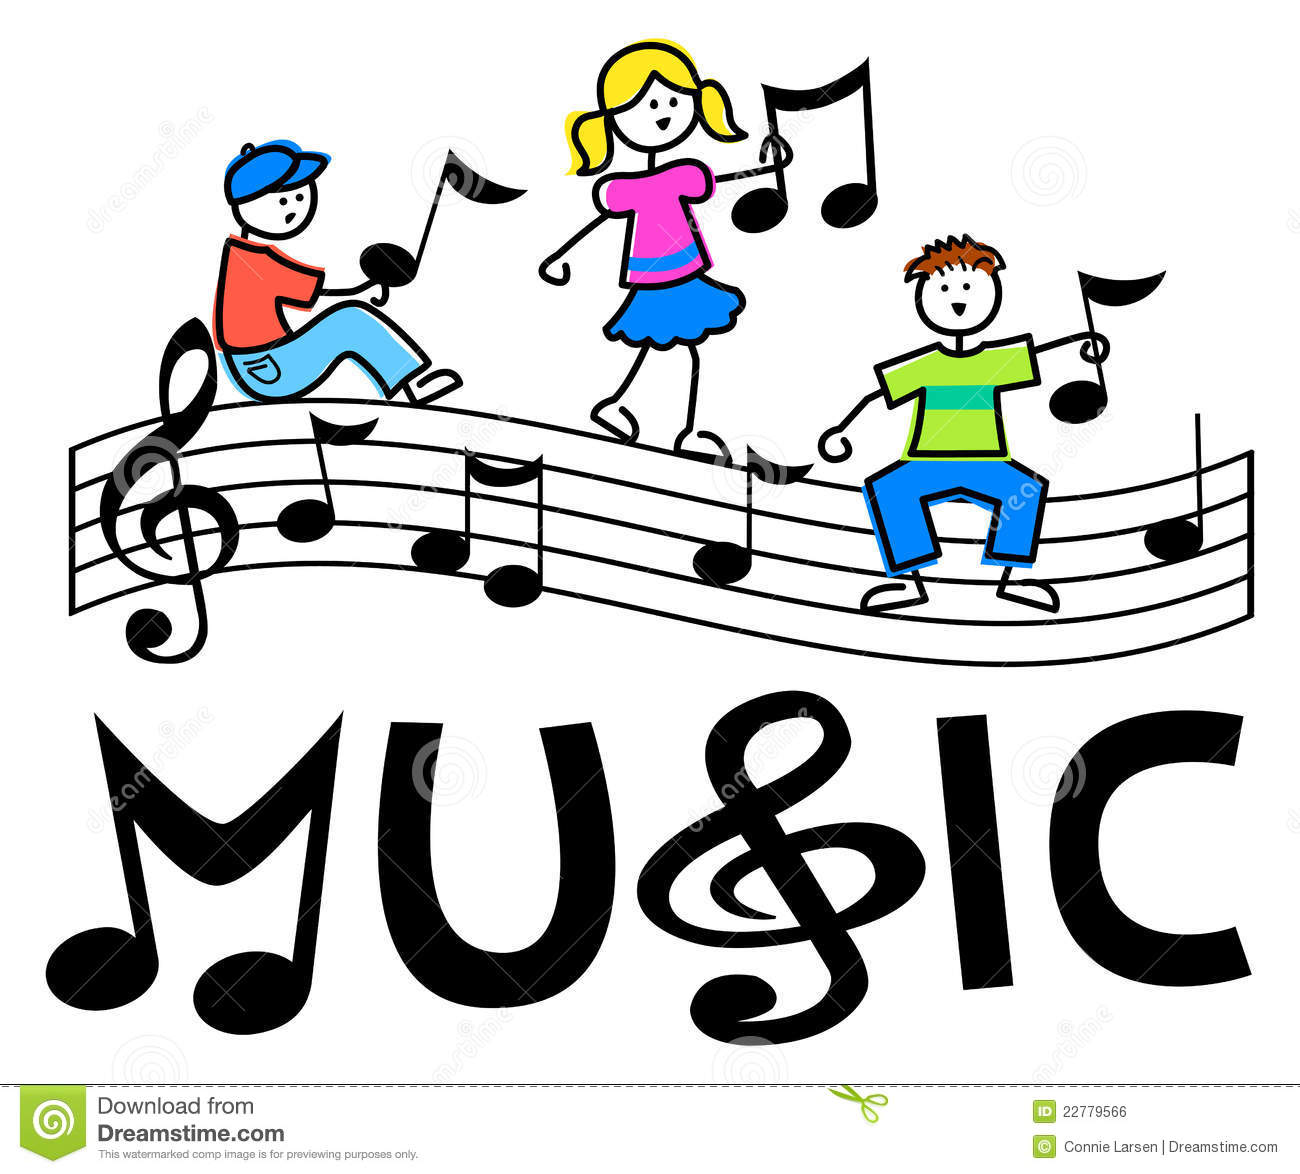 Band clipart music lesson, Band music lesson Transparent.